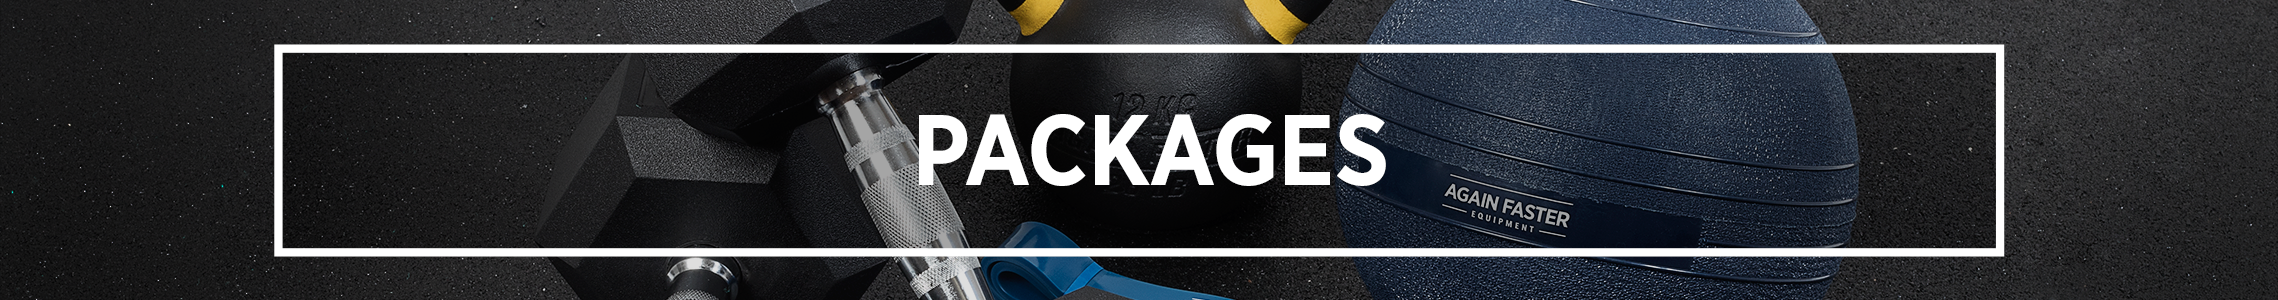 Equipment Packages